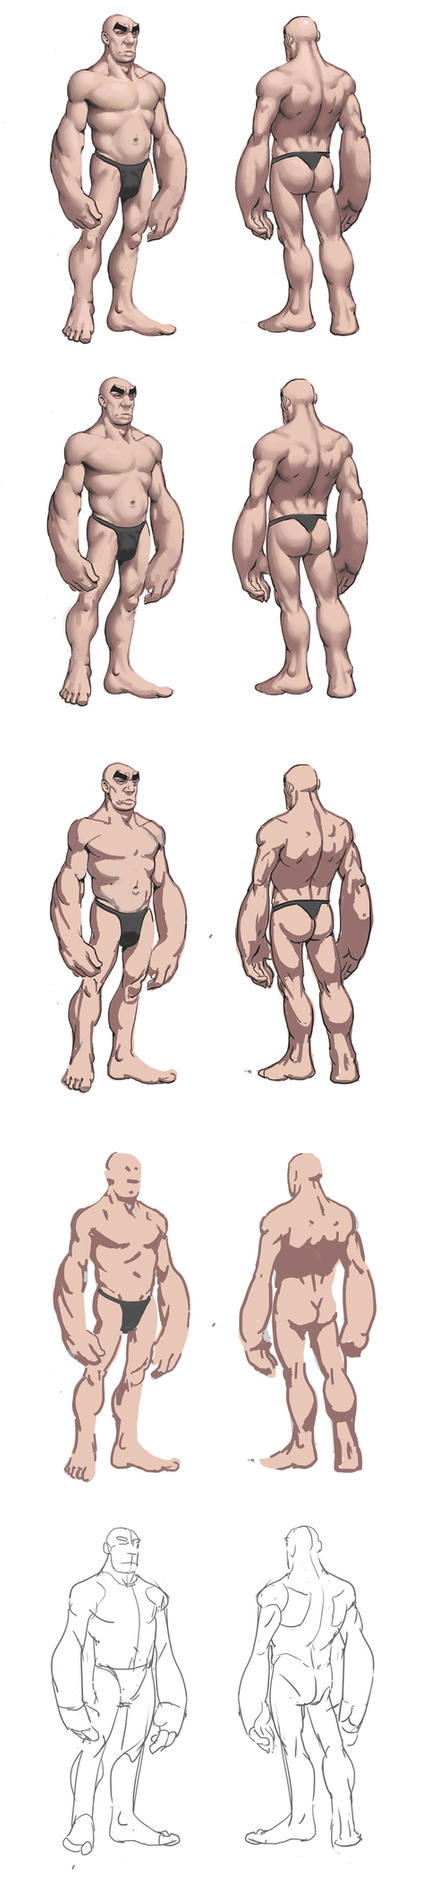 Naked dude process by awesomeplex